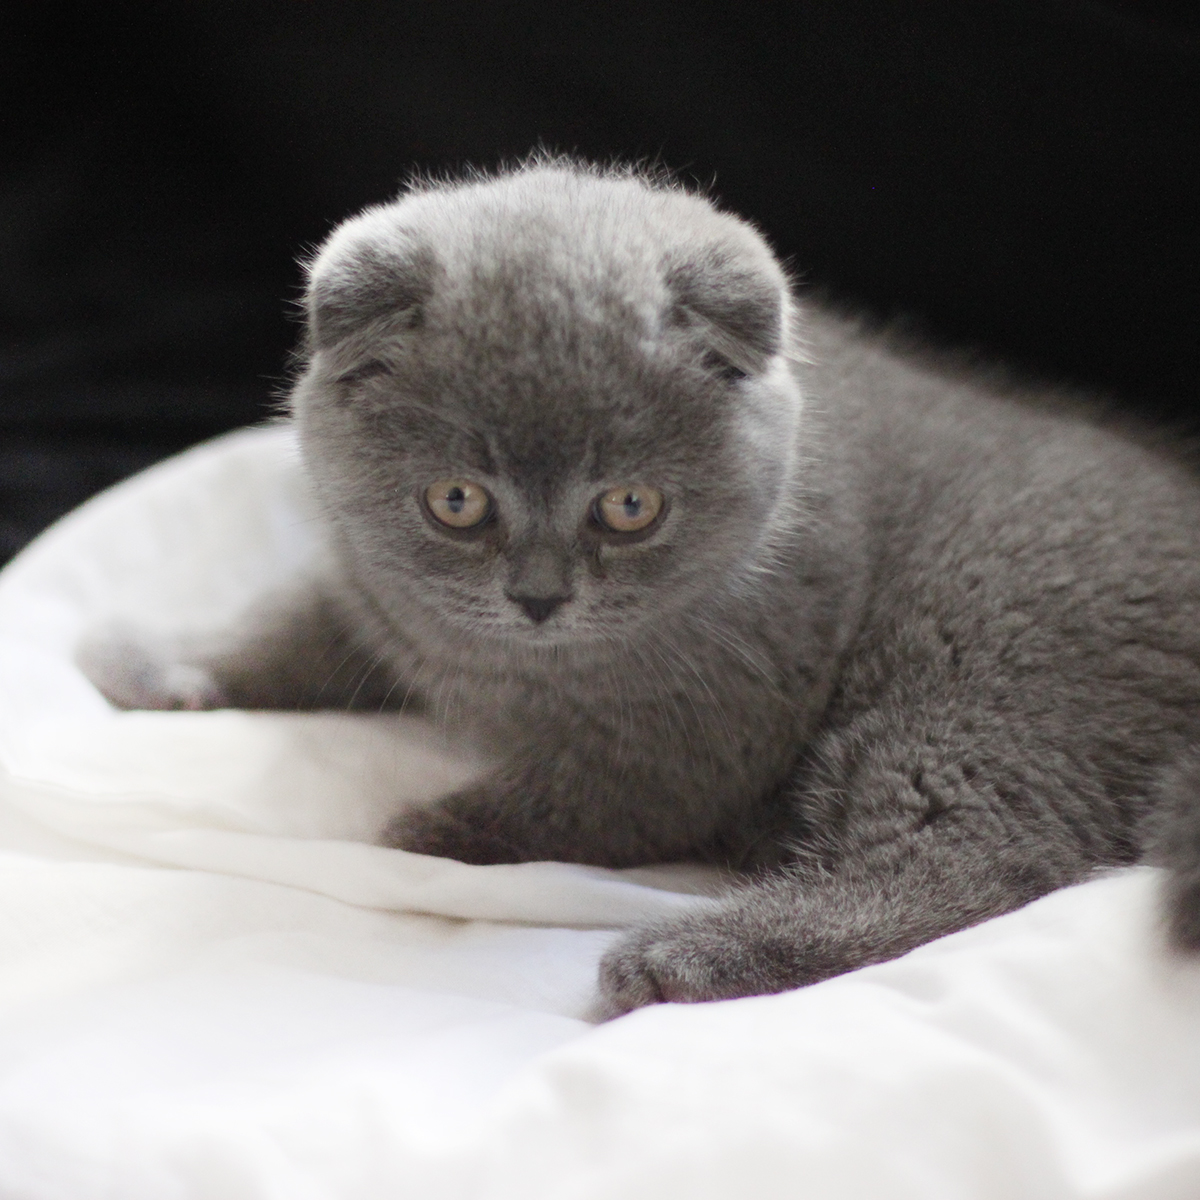 helmut chaton scottish fold